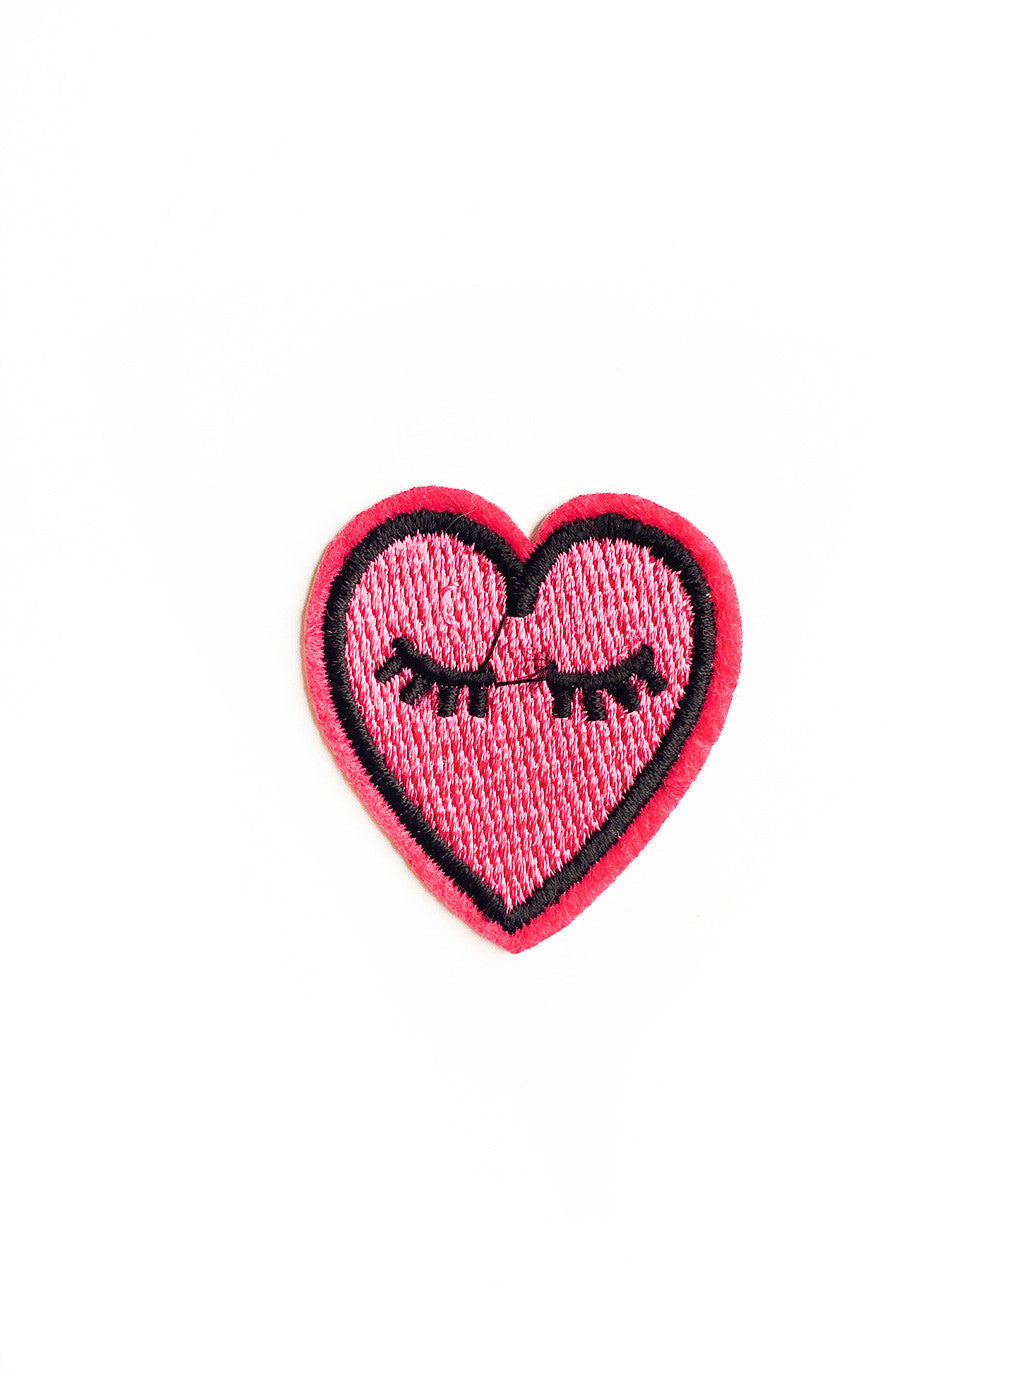 Lonely Pink Heart Iron On Patch